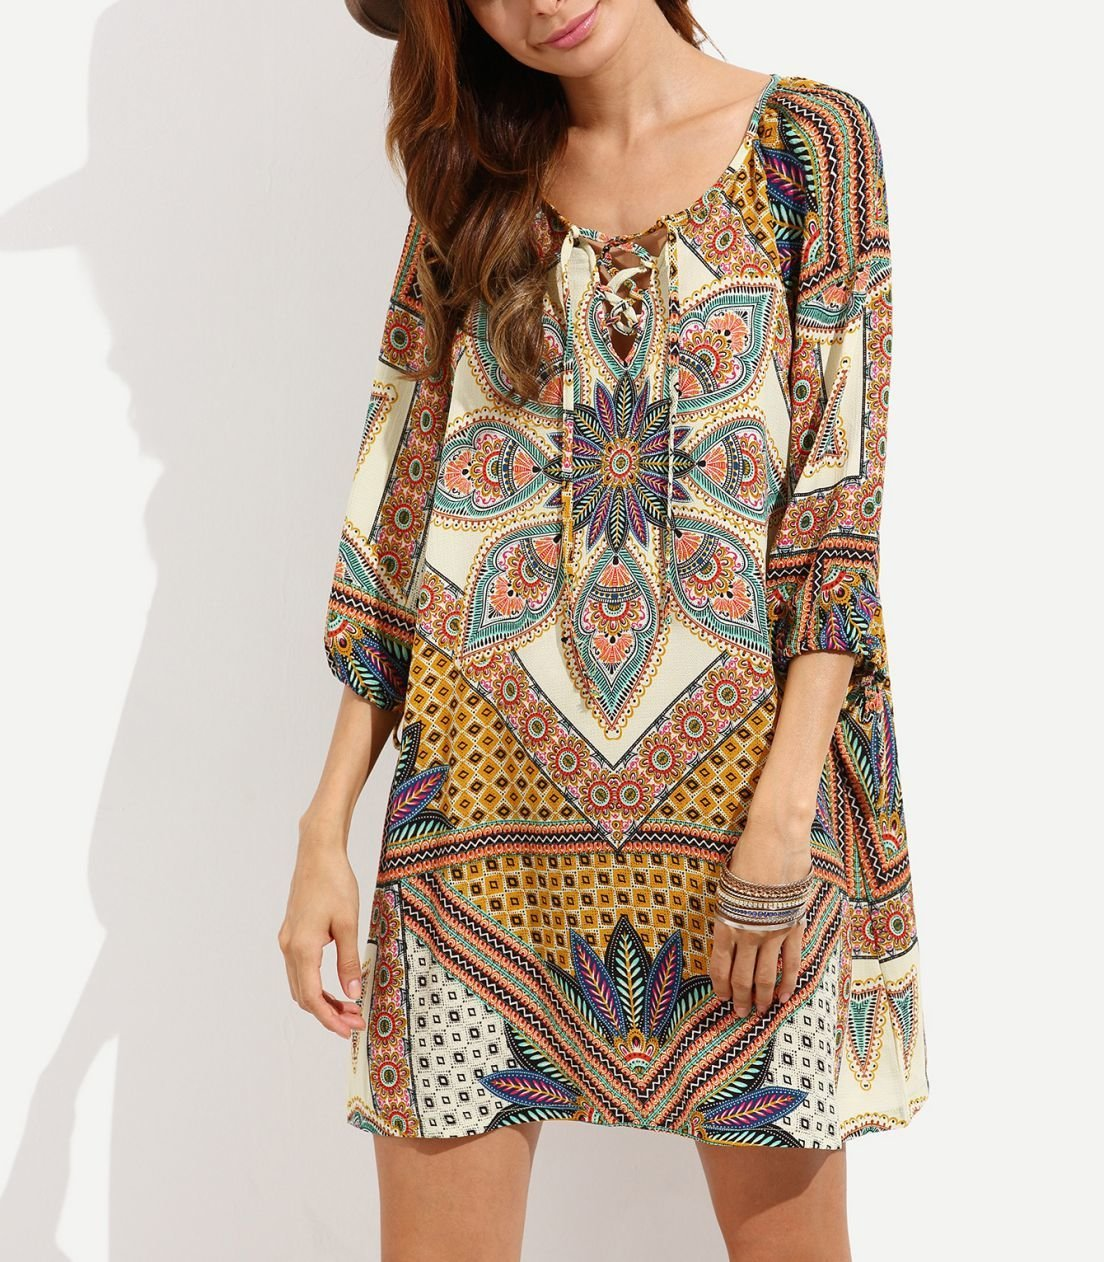 ¾ Sleeve Peasant Style Casual Dress with Loose Fit